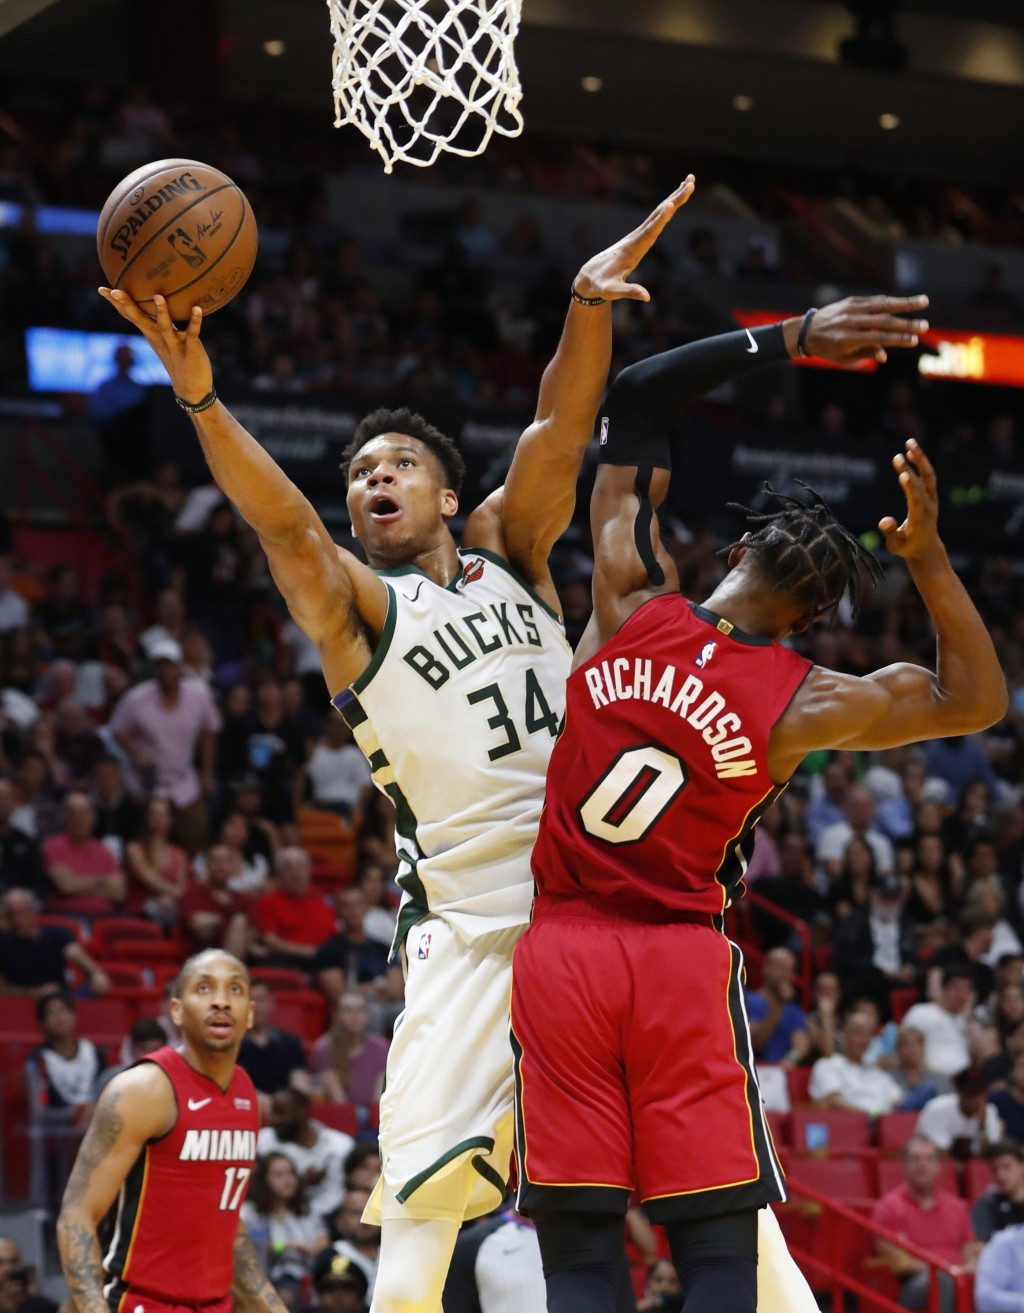 Milwaukee Bucks forward Giannis Antetokounmpo (34) goes up for a shot against Miami Heat guard Josh Richardson (0) during the second half of an NBA ba